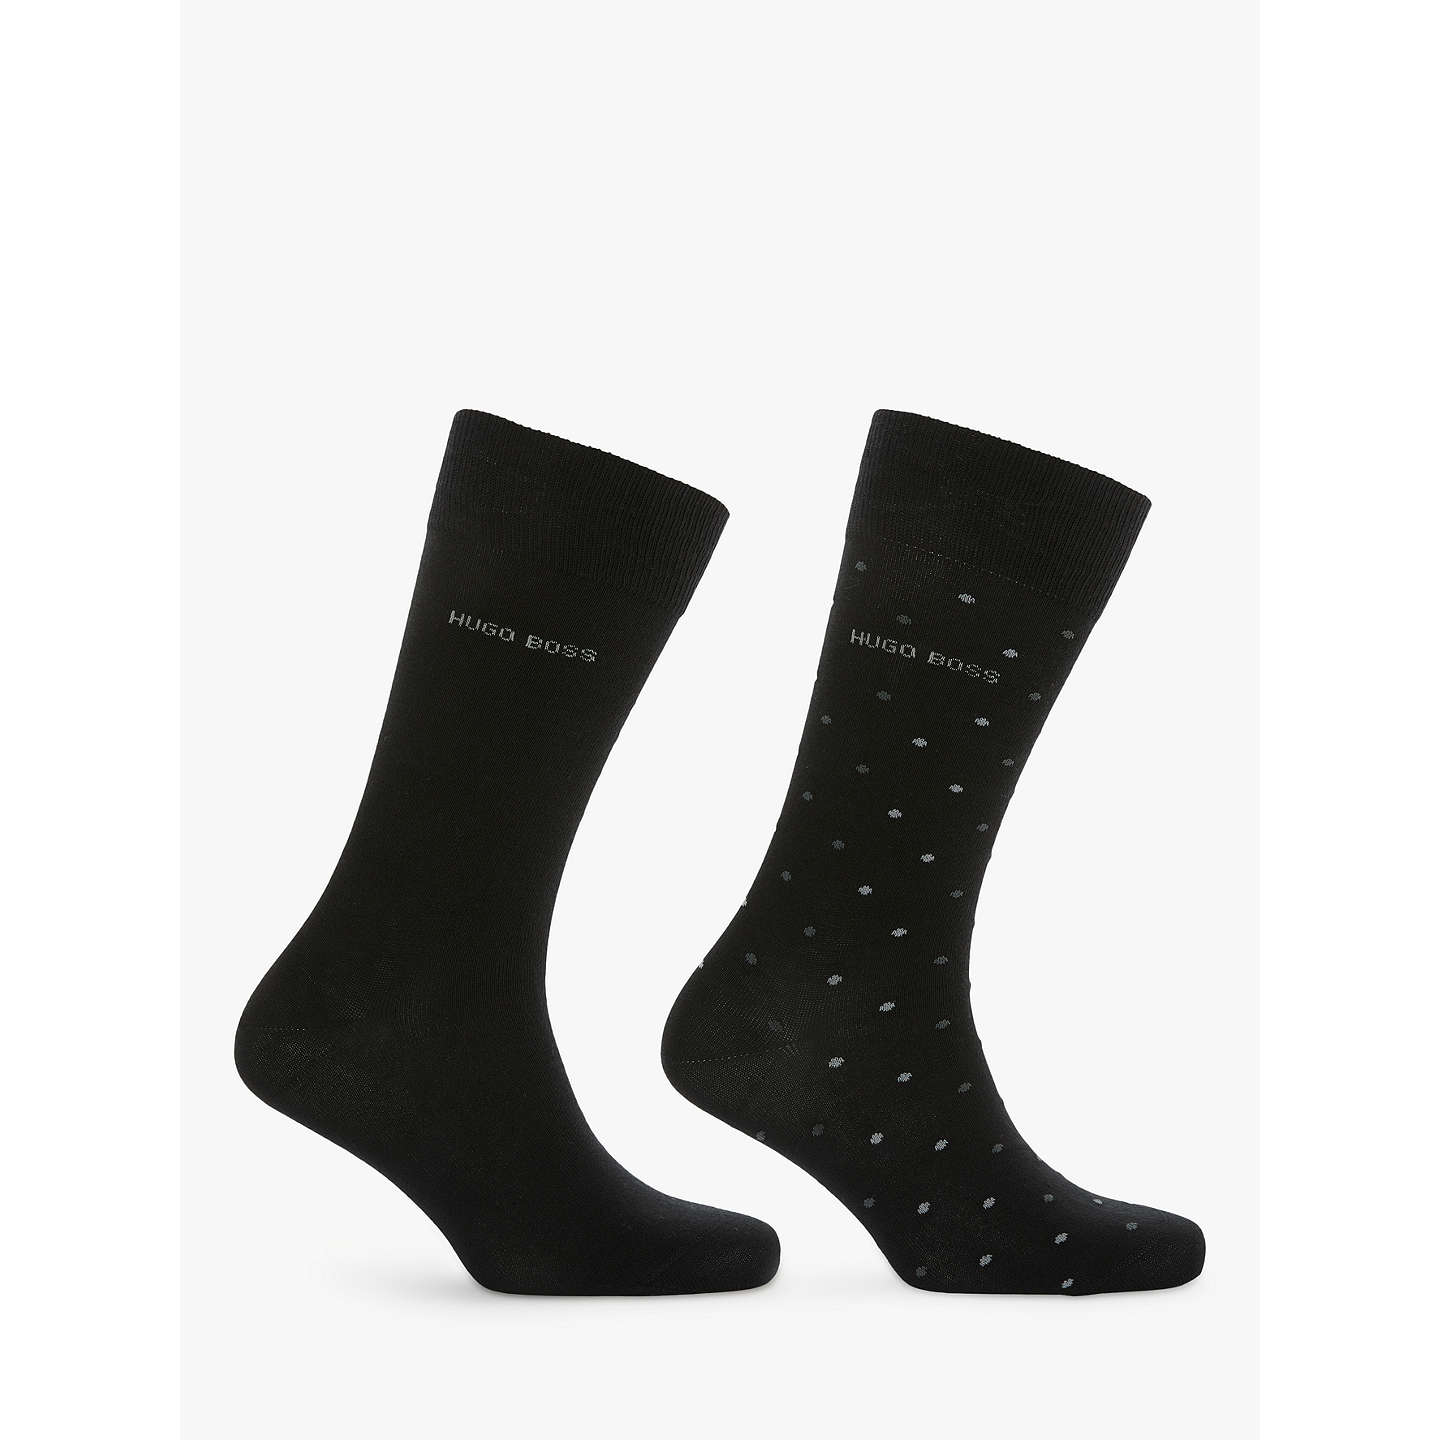 BuyBOSS Spot Plain Socks, Pack of 2, Black/Grey, S Online at johnlewis.com